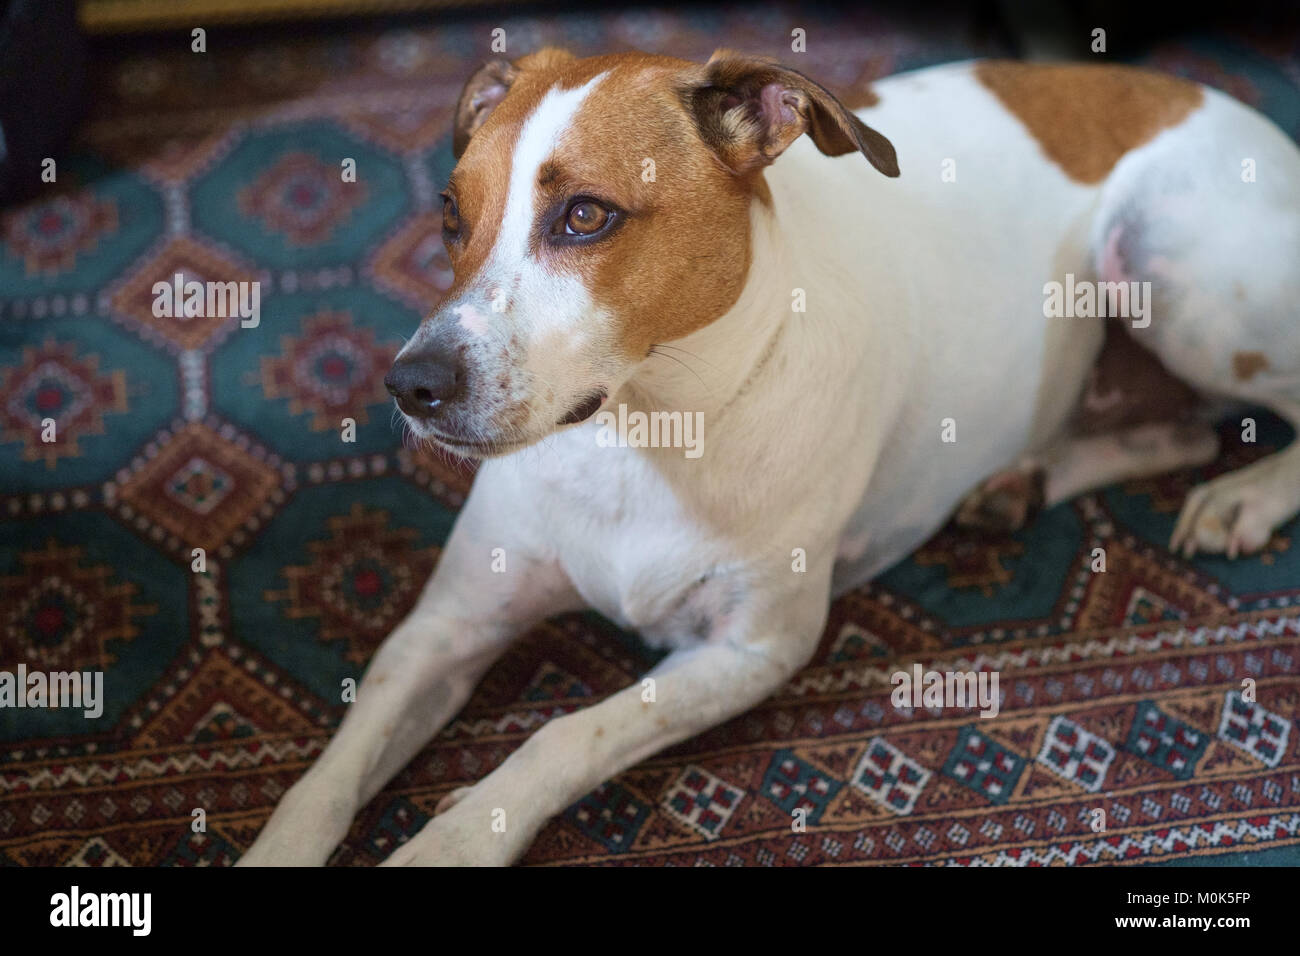 Three-year-old Danish Swedish Farmdog resting on a carpet. This breed, which originates from Denmark and southern - Stock Image